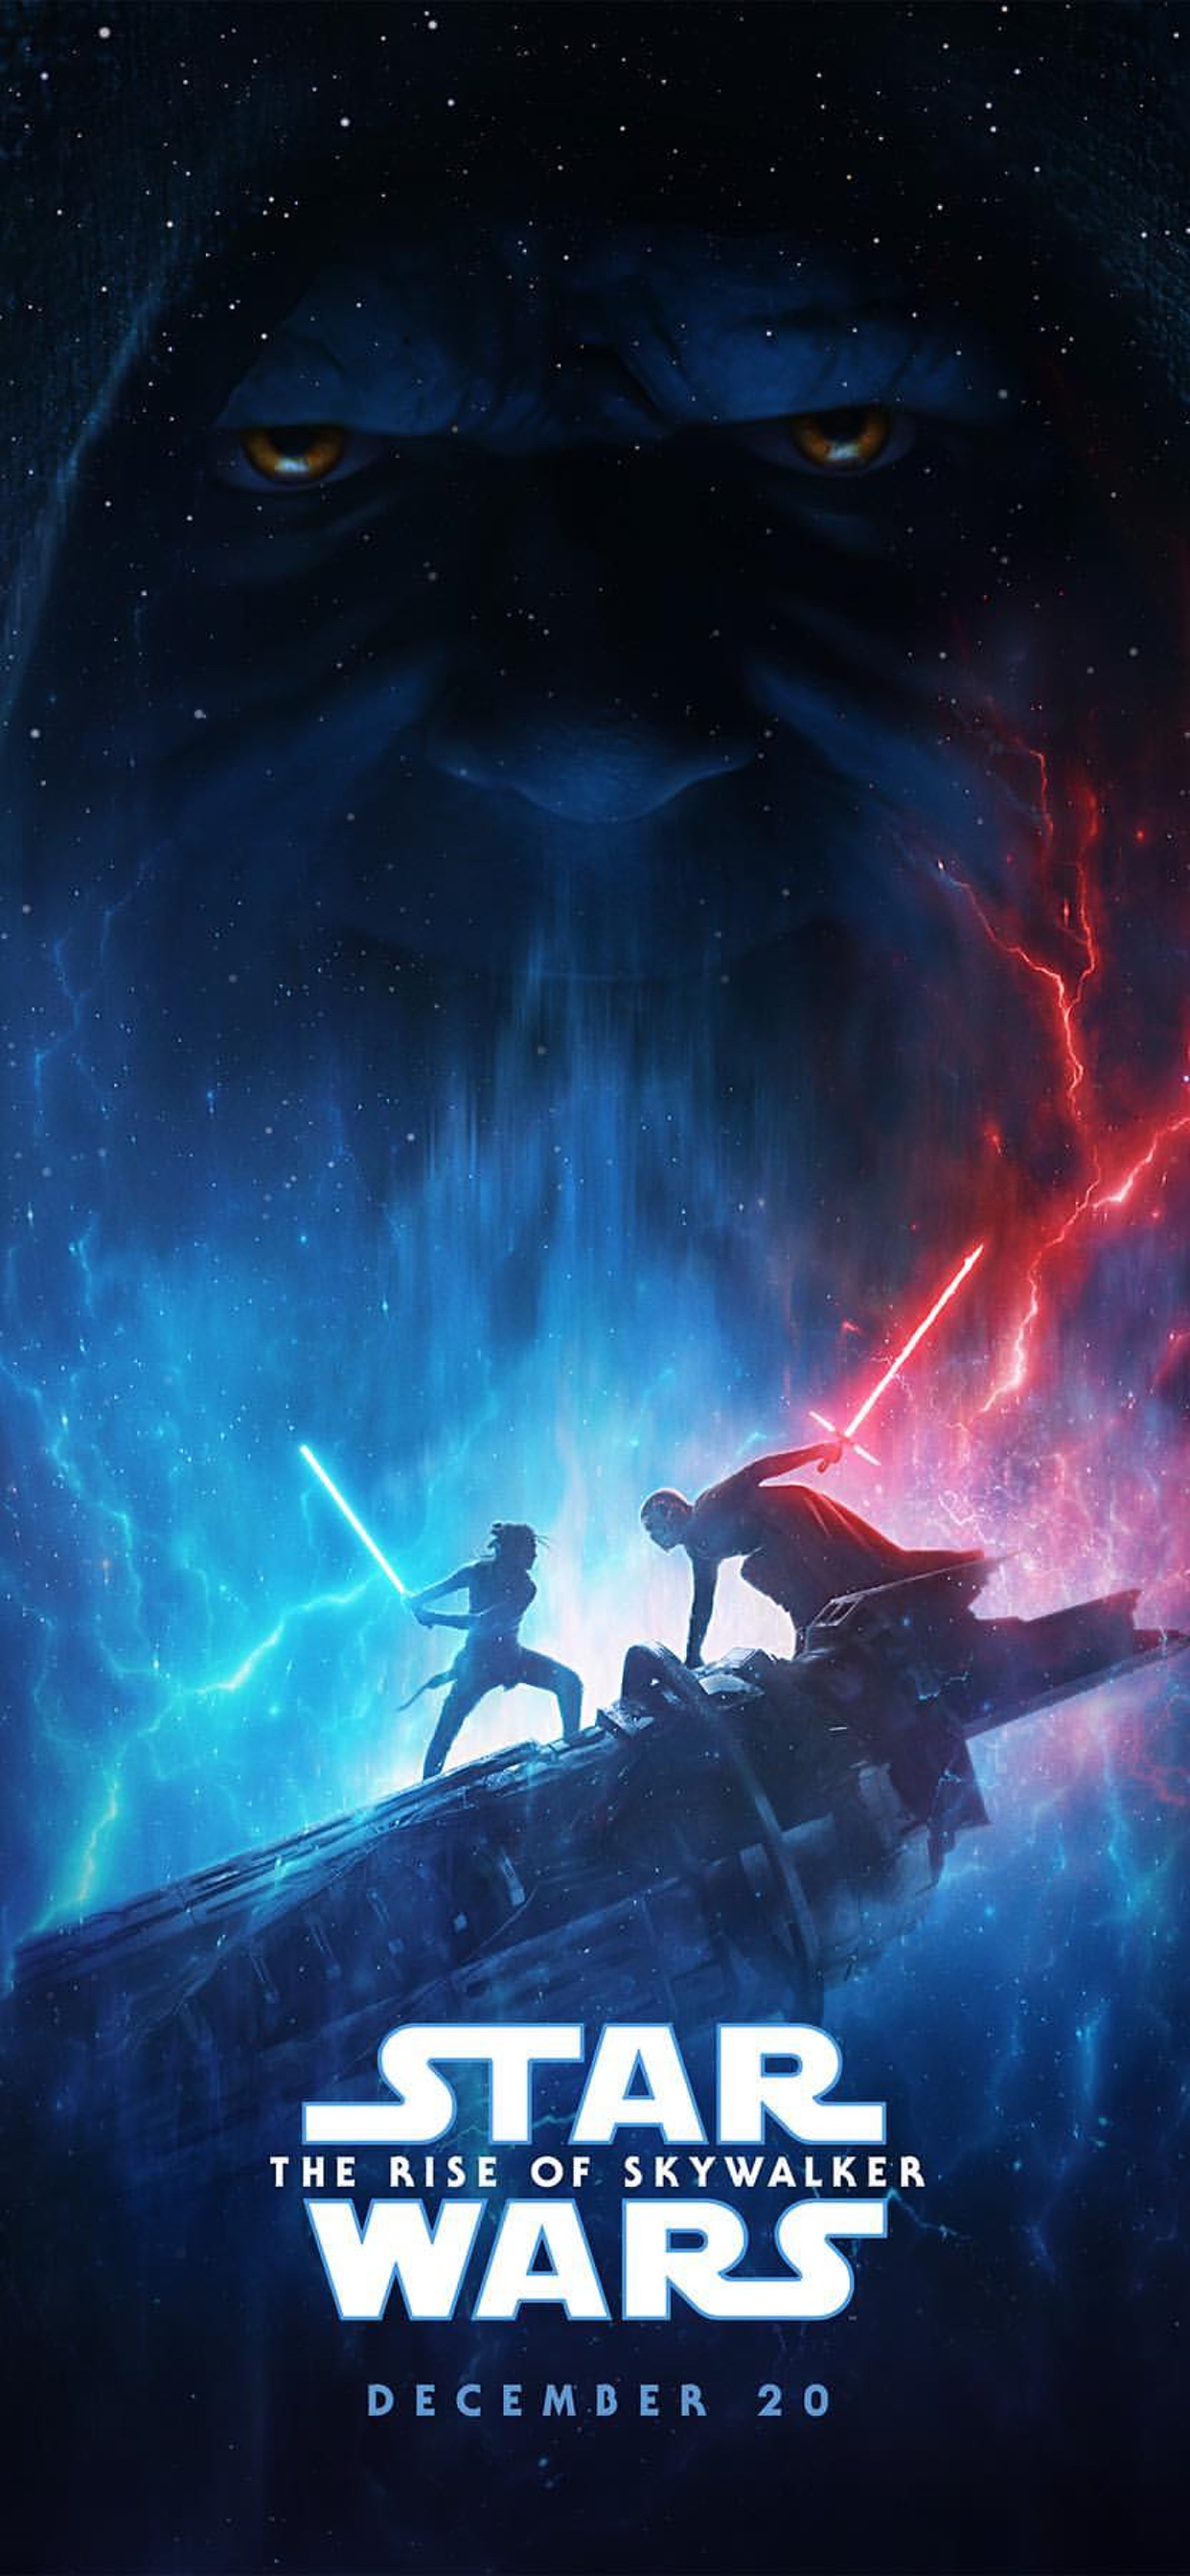 Star Wars Rise of Skywalker Emporer iPhone wallpaper